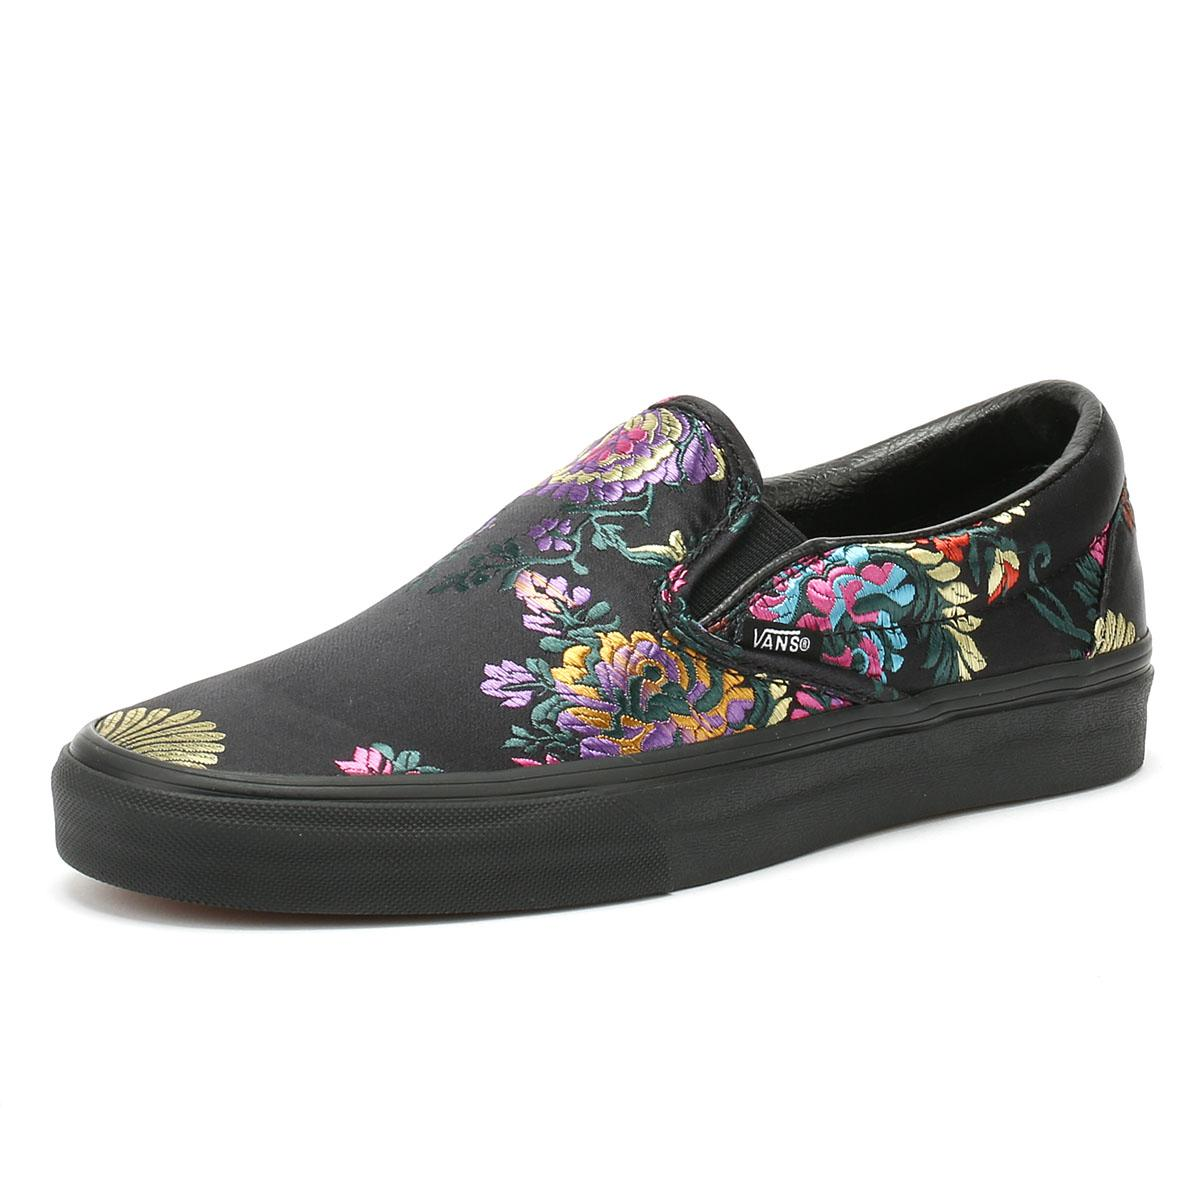 ec7c8ddafdc Vans - Classic Slip On Festival Satin Womens Black Trainers - Lyst. View  fullscreen